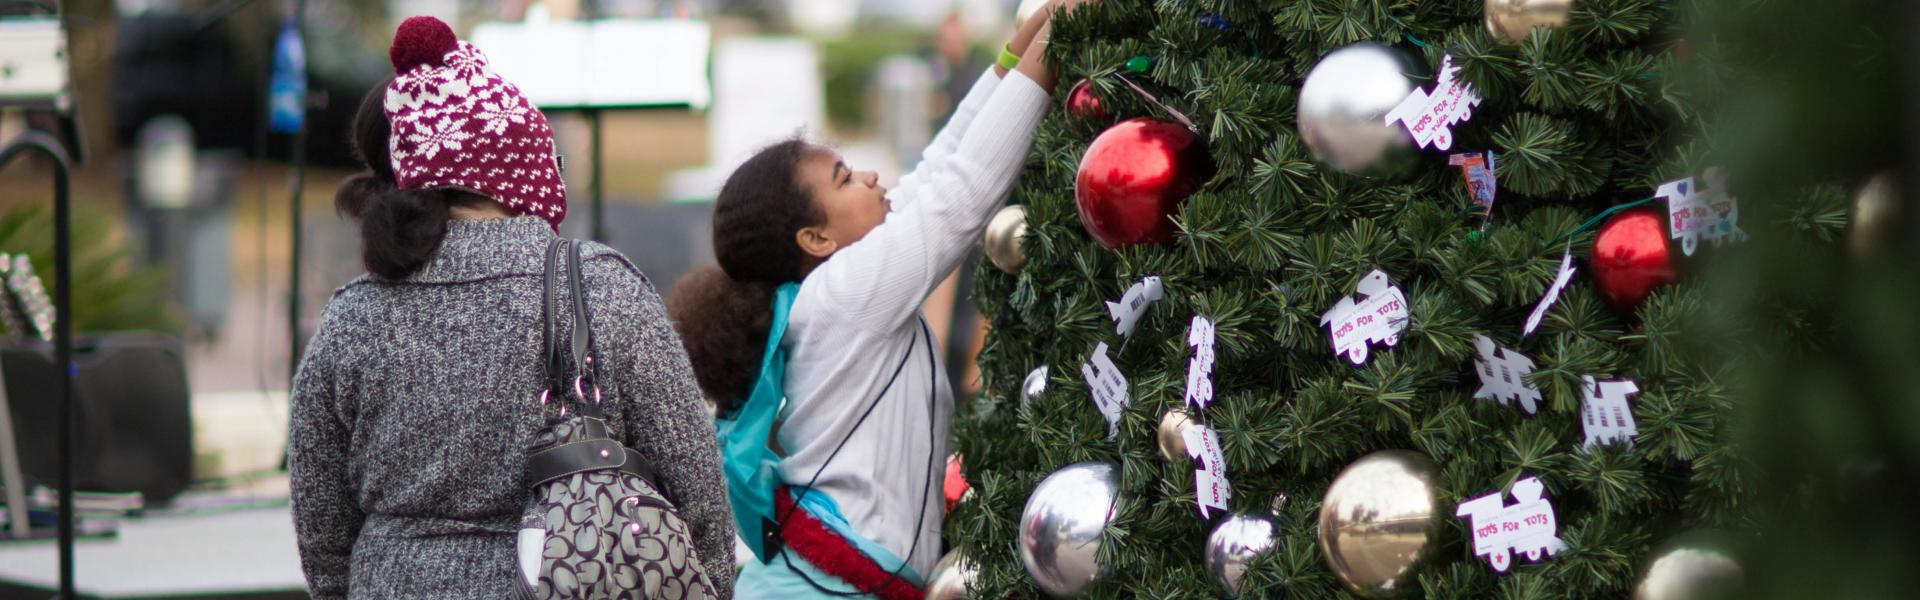 Myrtle Beach Holiday Events